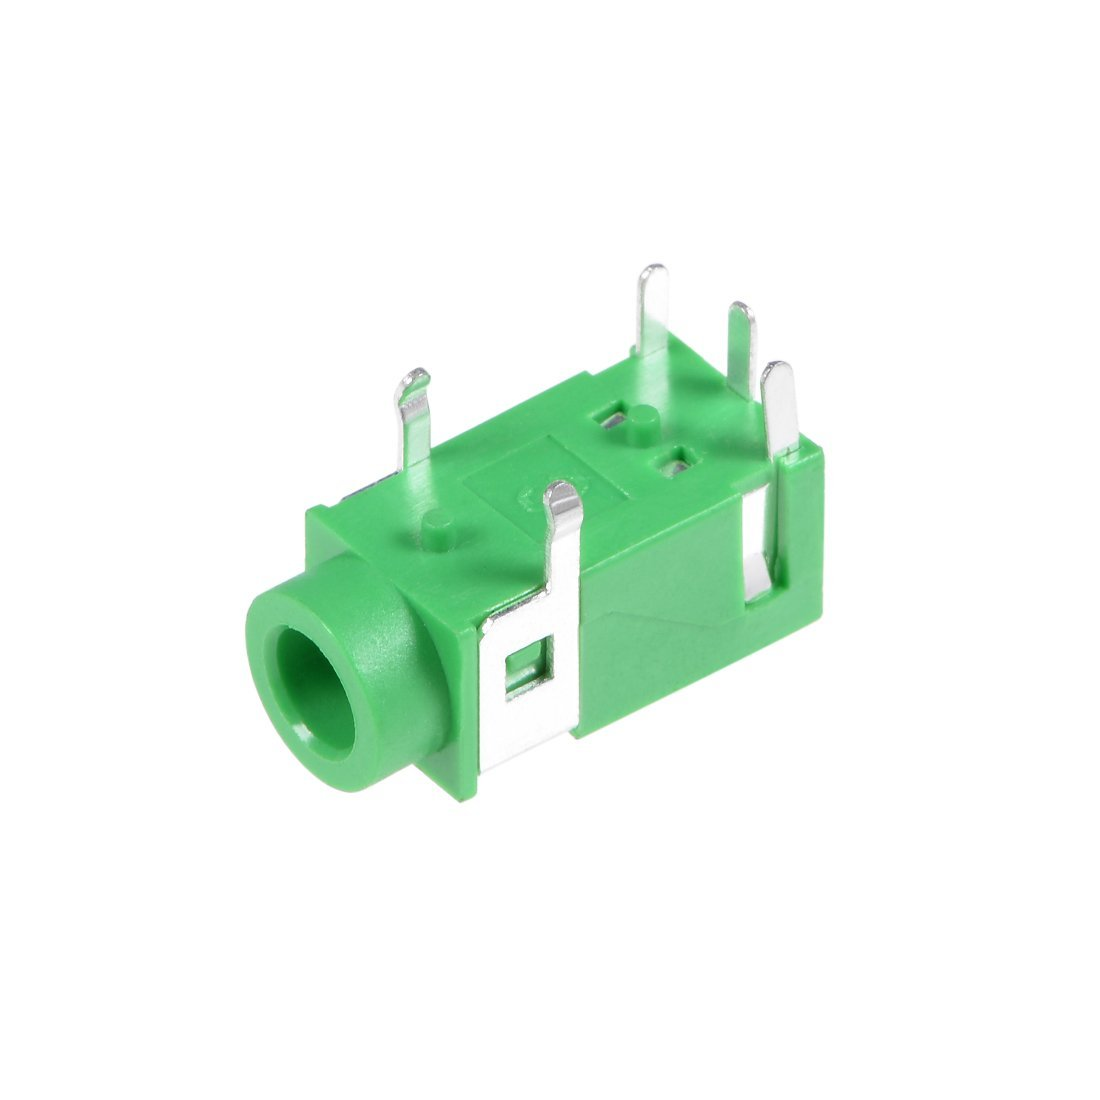 Protech 68-24047-10 Connector//Transition Assembly